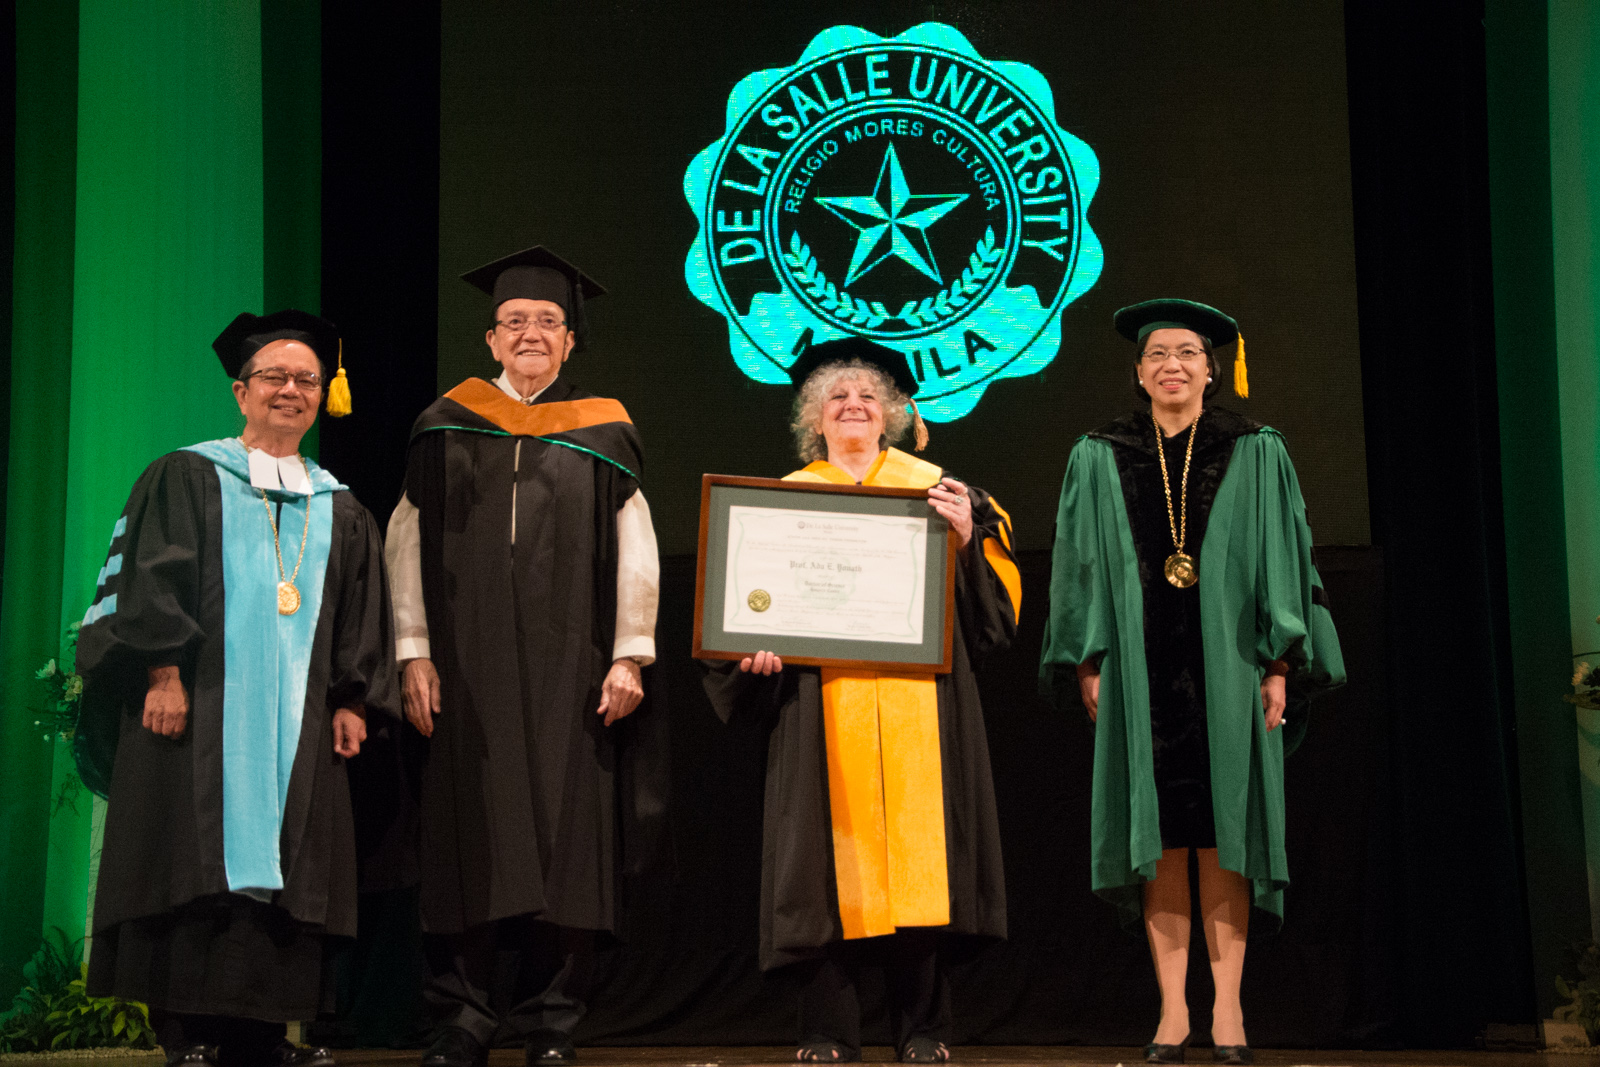 Chemistry Nobel Laureate Prof. Ada E. Yonath being awarded an honorary doctorate degree from De La Salle University in Manila